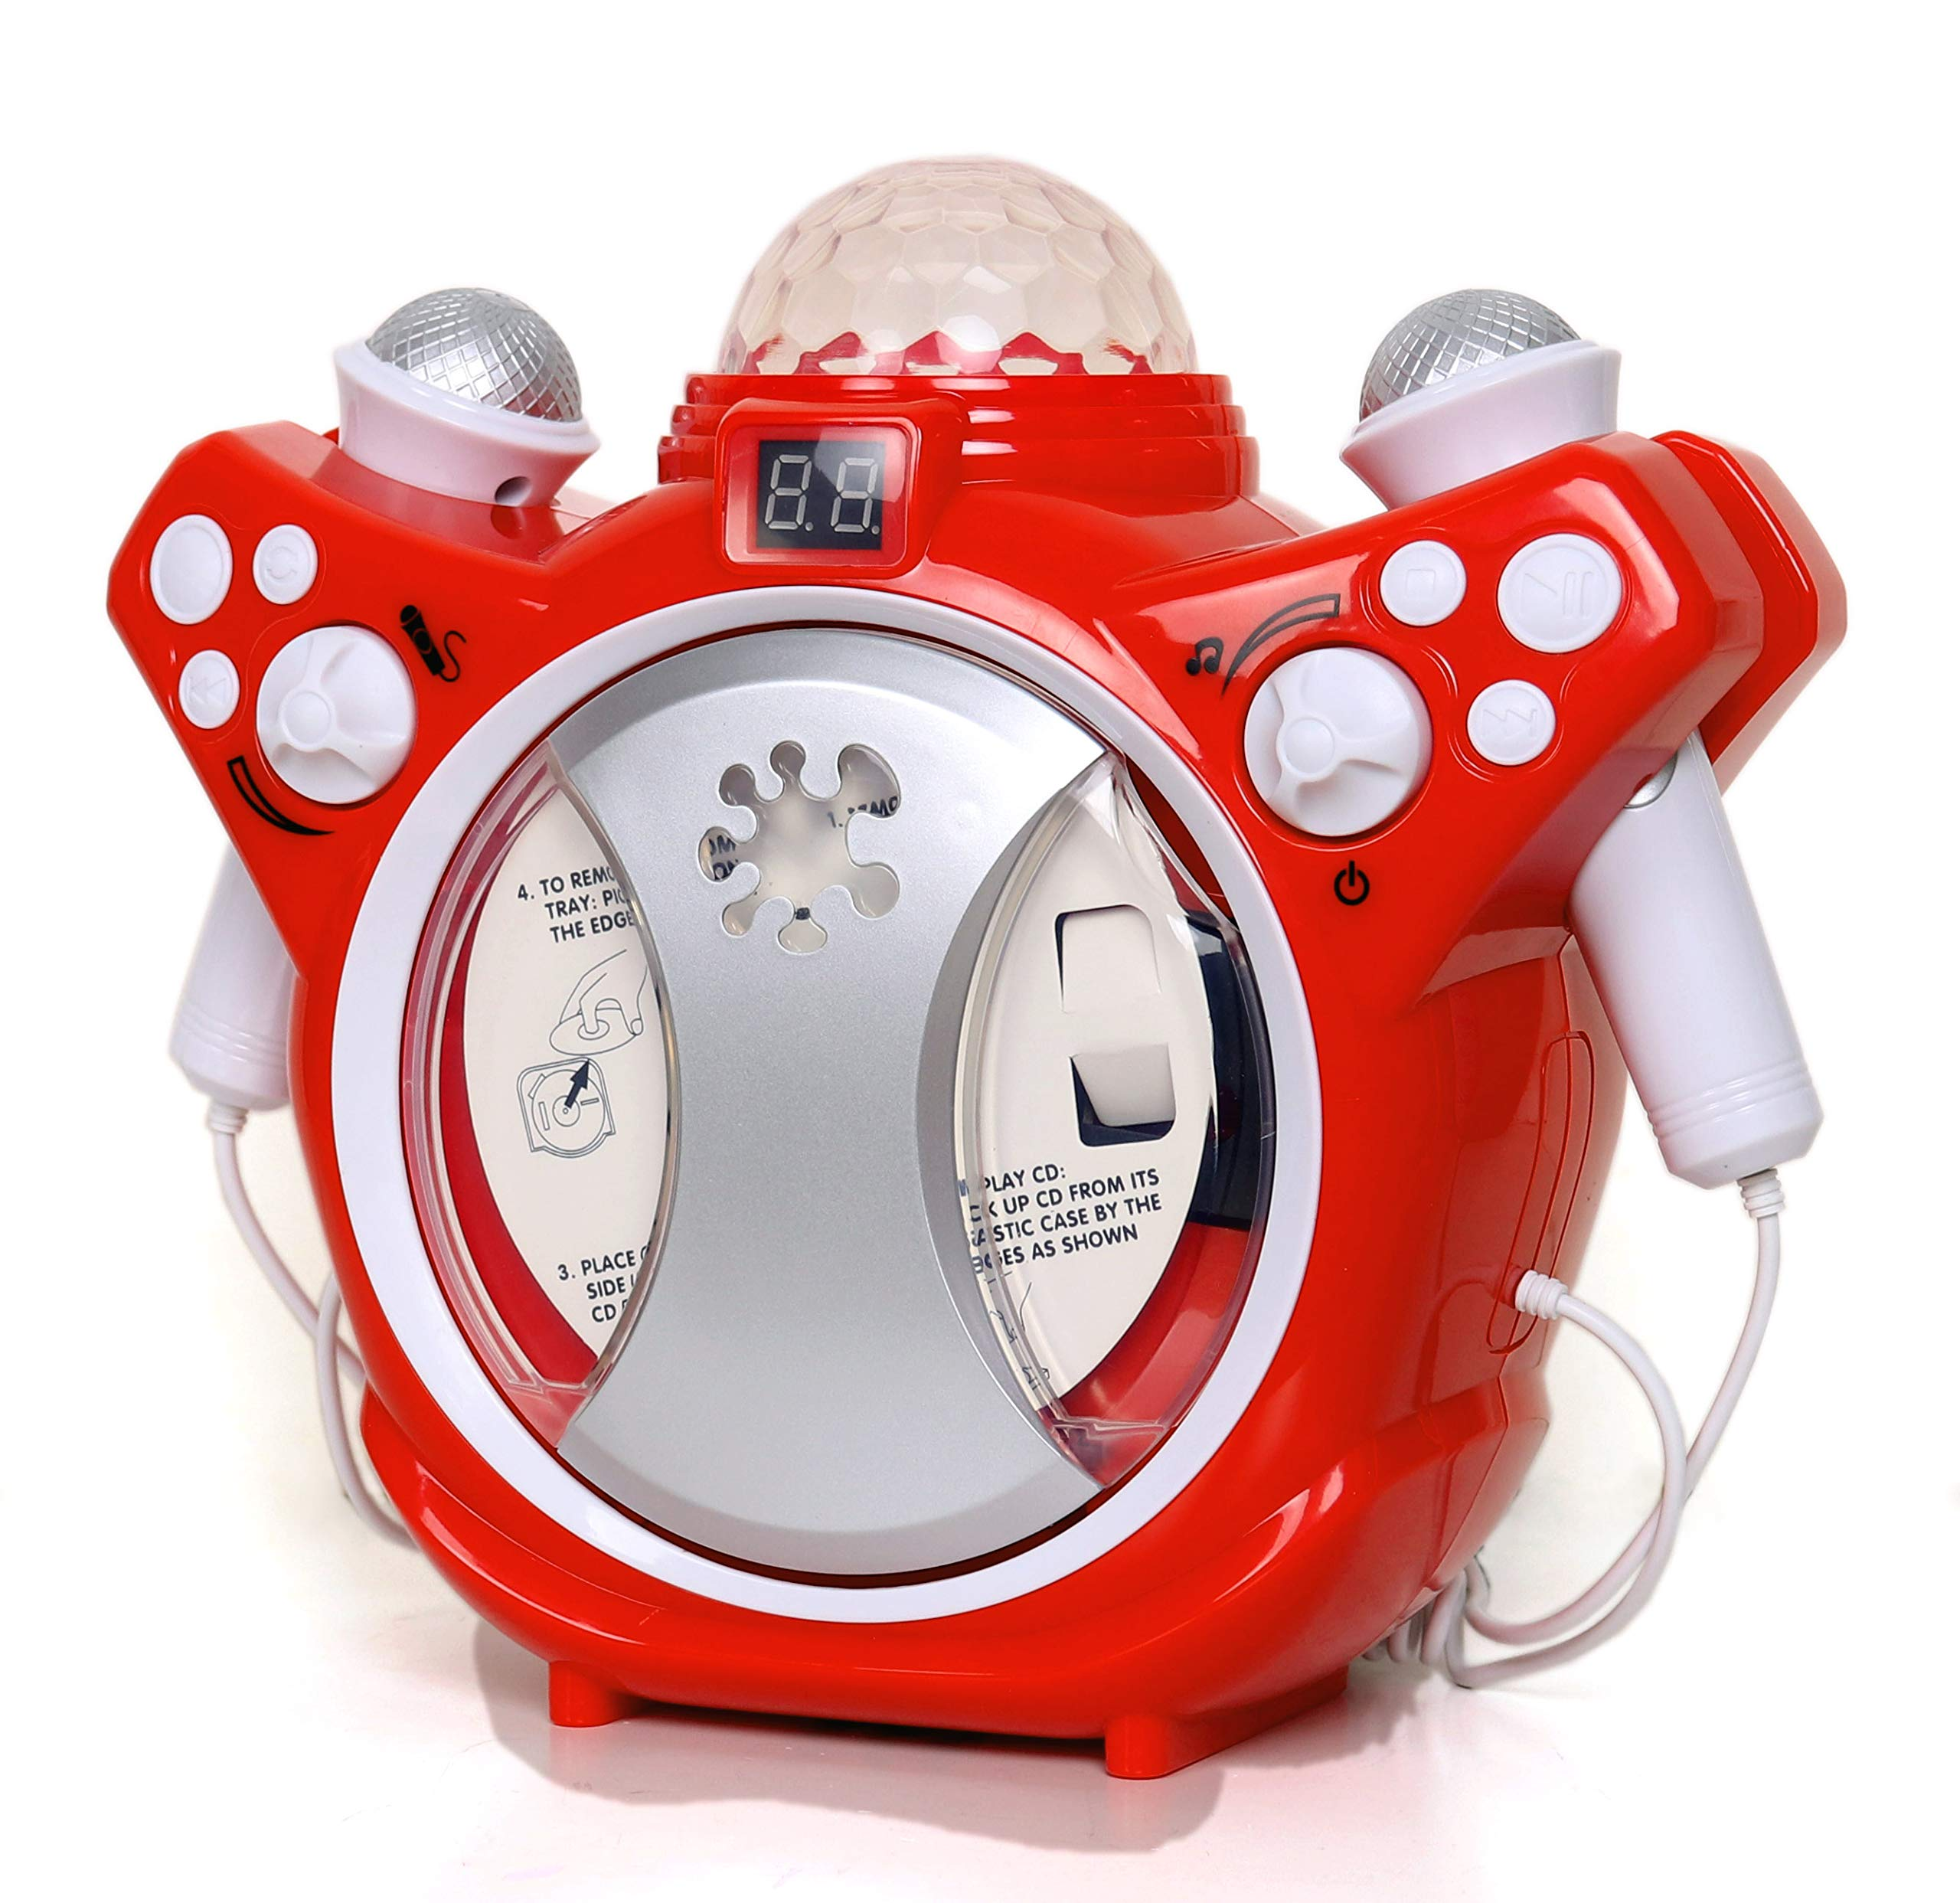 C.Z Kids Karaoke CD Player Listen or Sing Along to Your Favourite Songs by C.Z (Image #2)